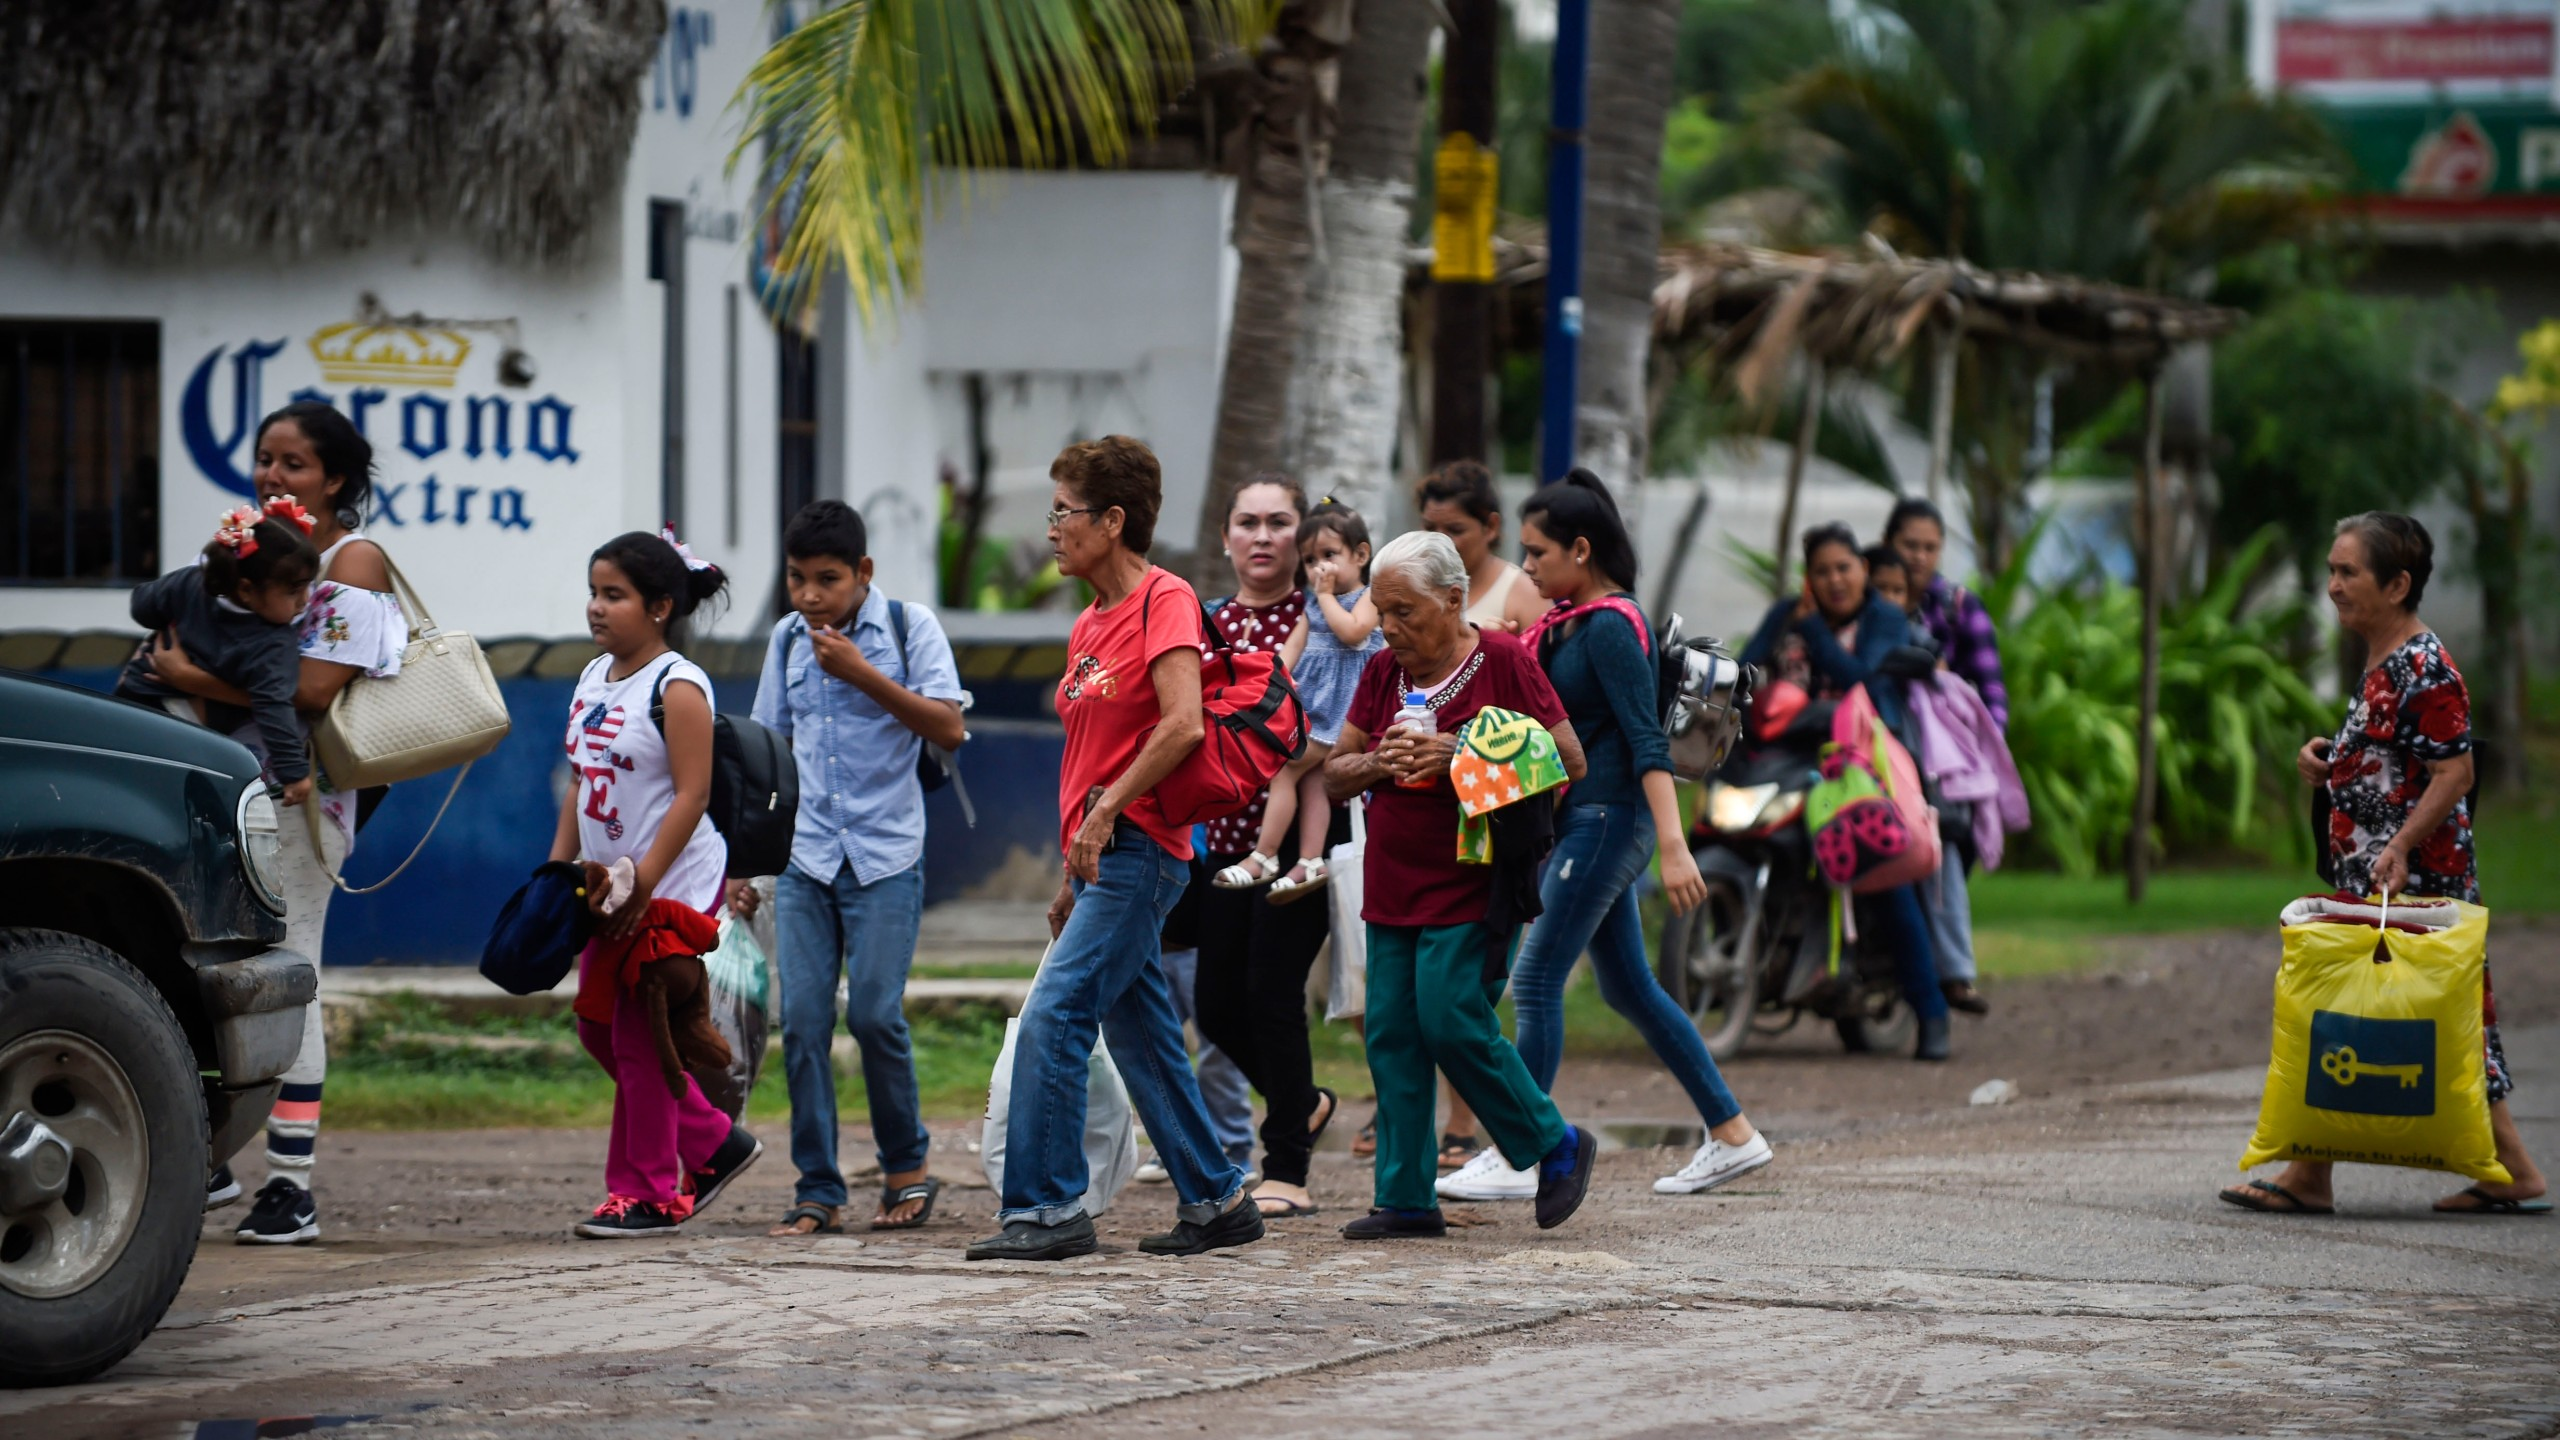 People prepare to be evacuated in Teacapan, Sinaloa state, Mexico, on Oct. 22, 2018, before the arrival of Hurricane Willa. (Credit: Alfredo Estrella / AFP / Getty Images)